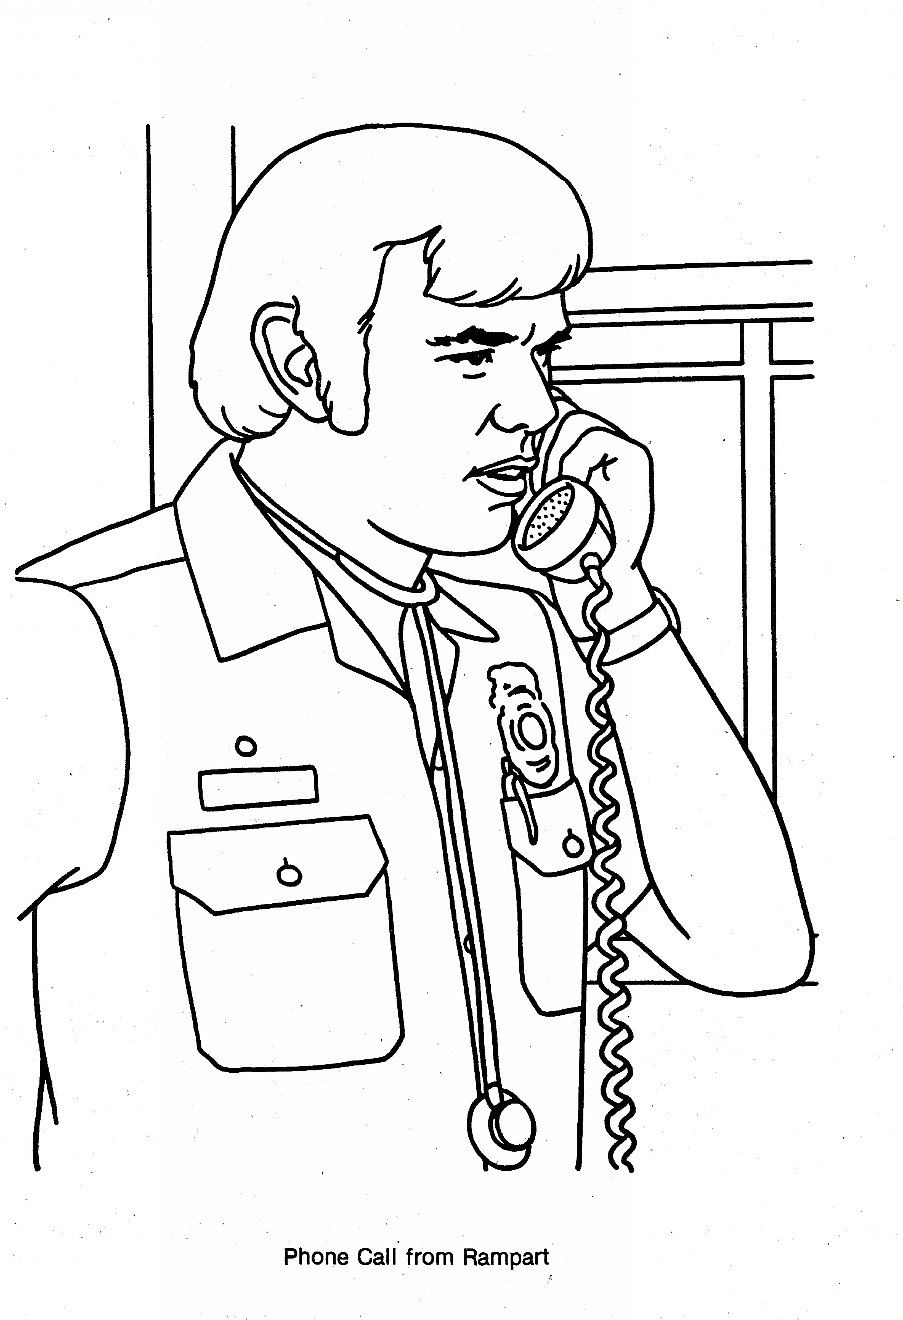 Emergency TV Show Coloring Pages Coloring pages